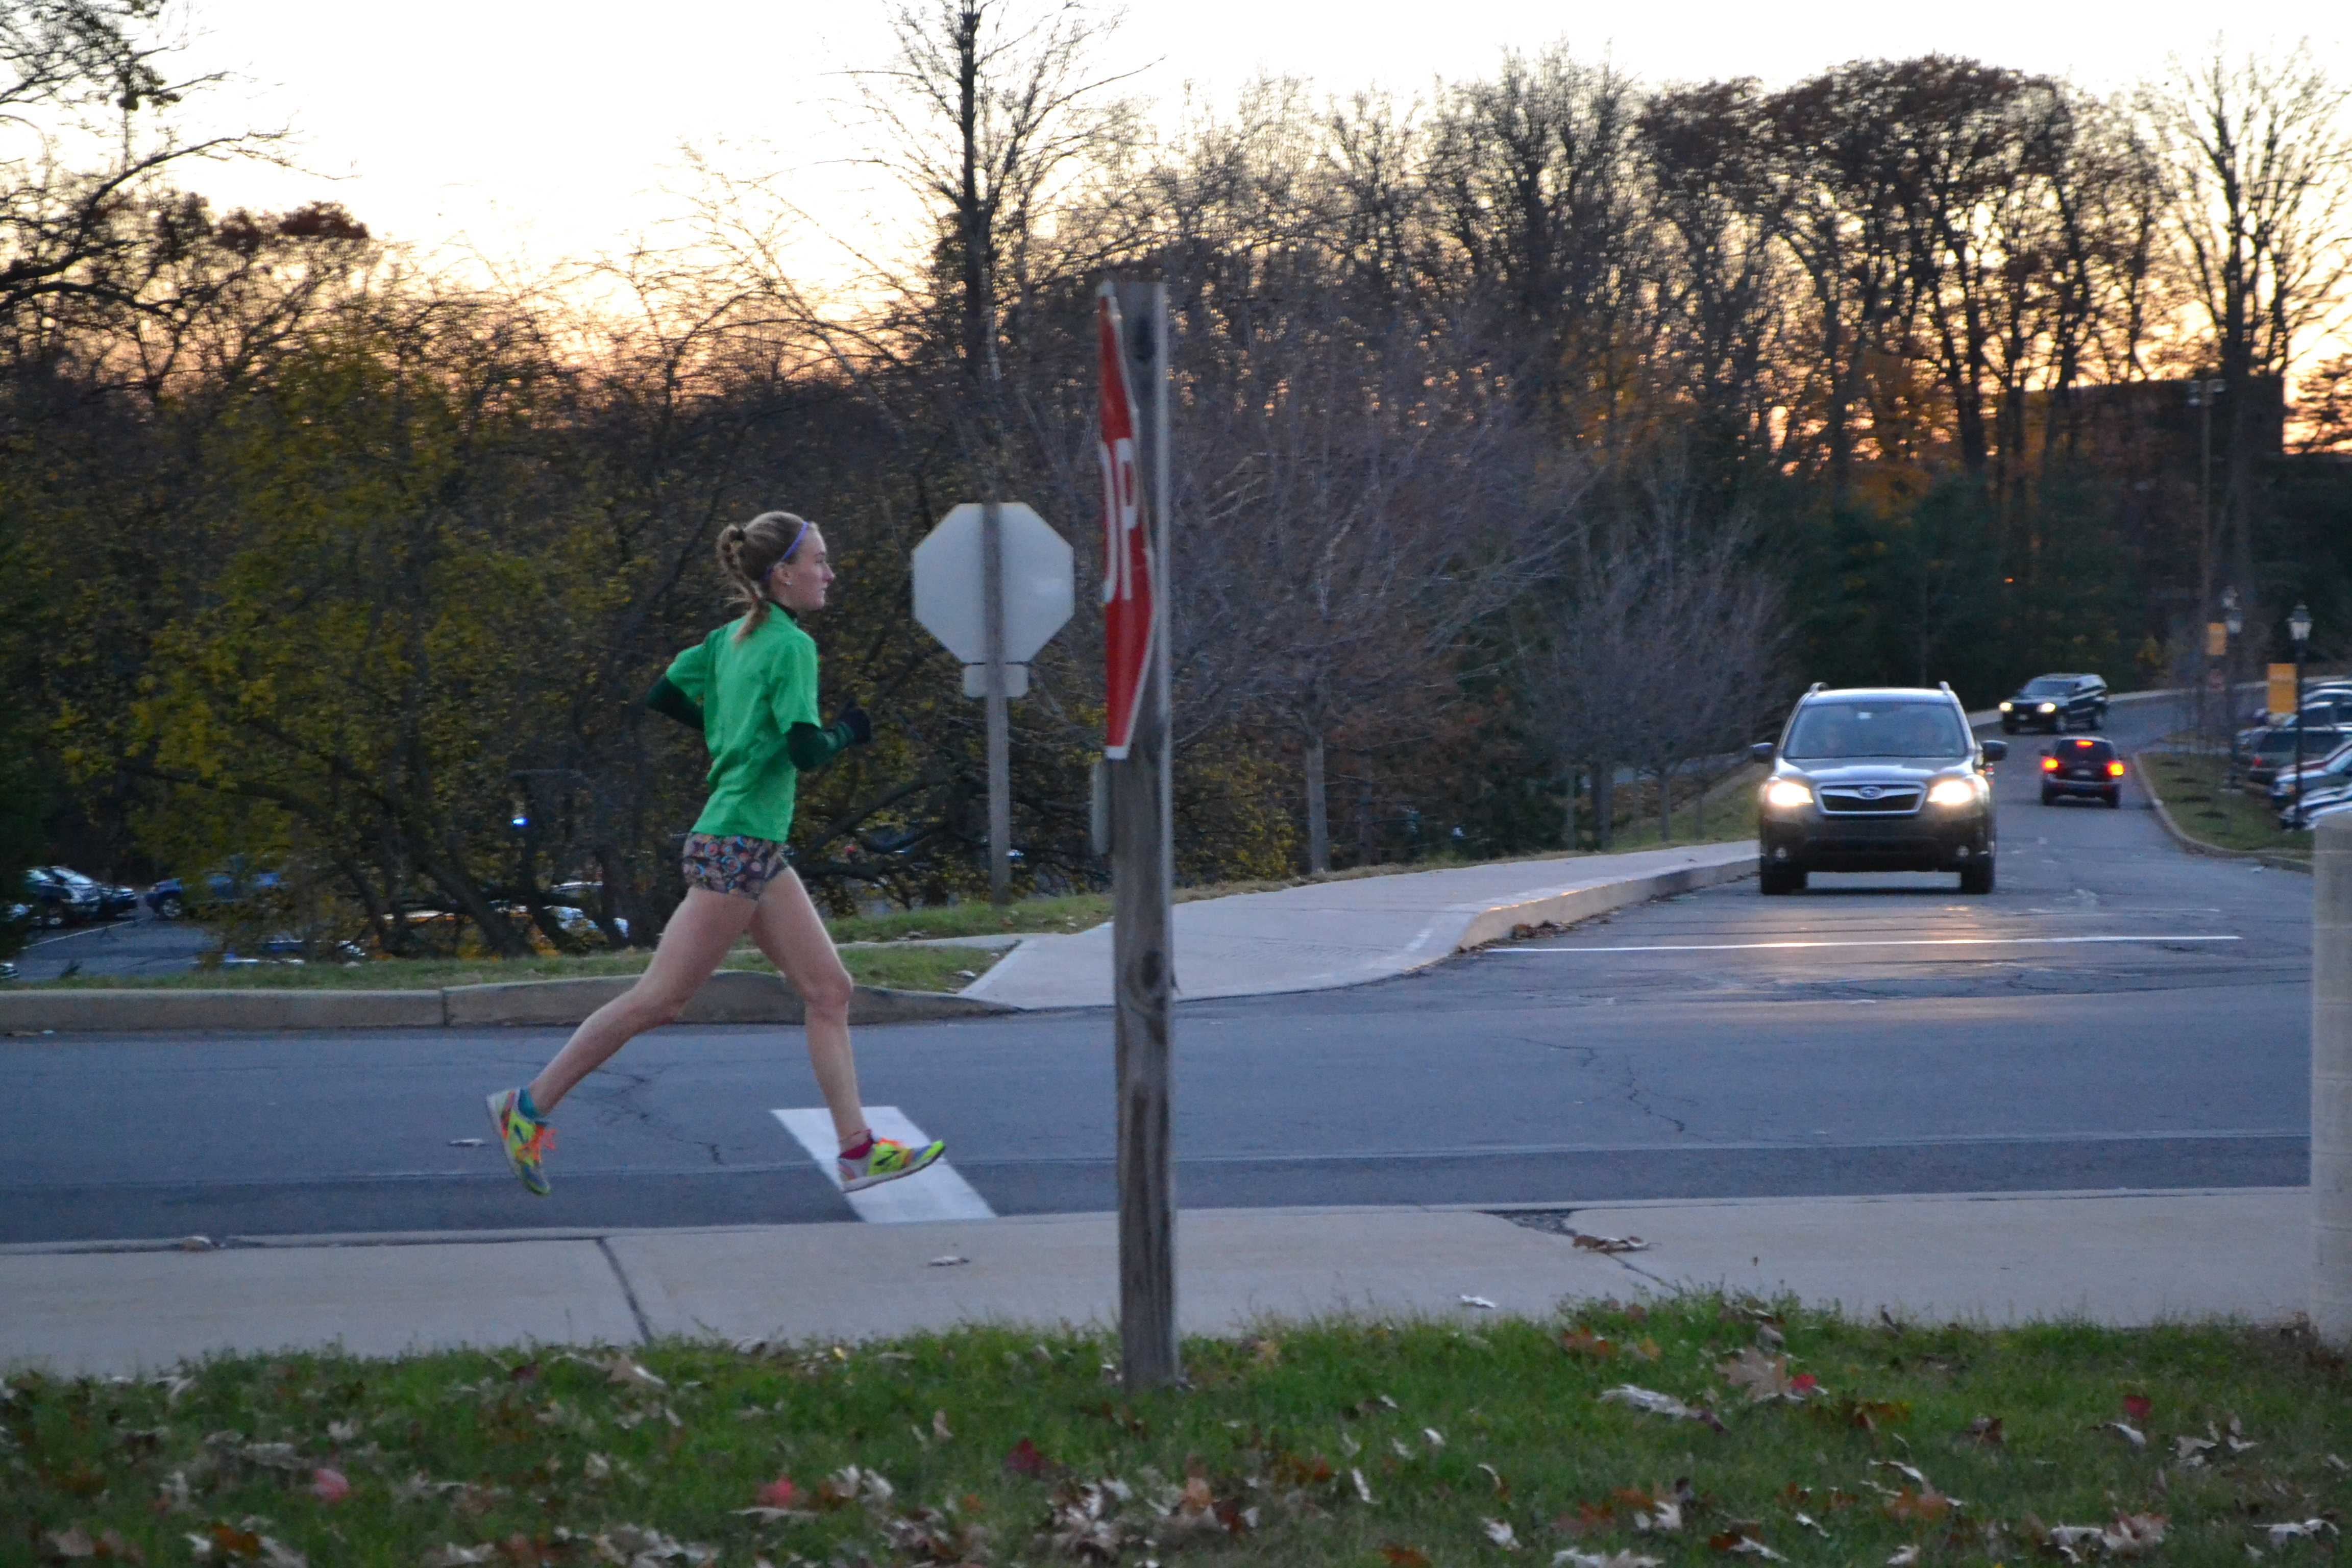 Emma Doughman, a junior, exercise sceience major, trains all year round for upcoming  events by running around campus.